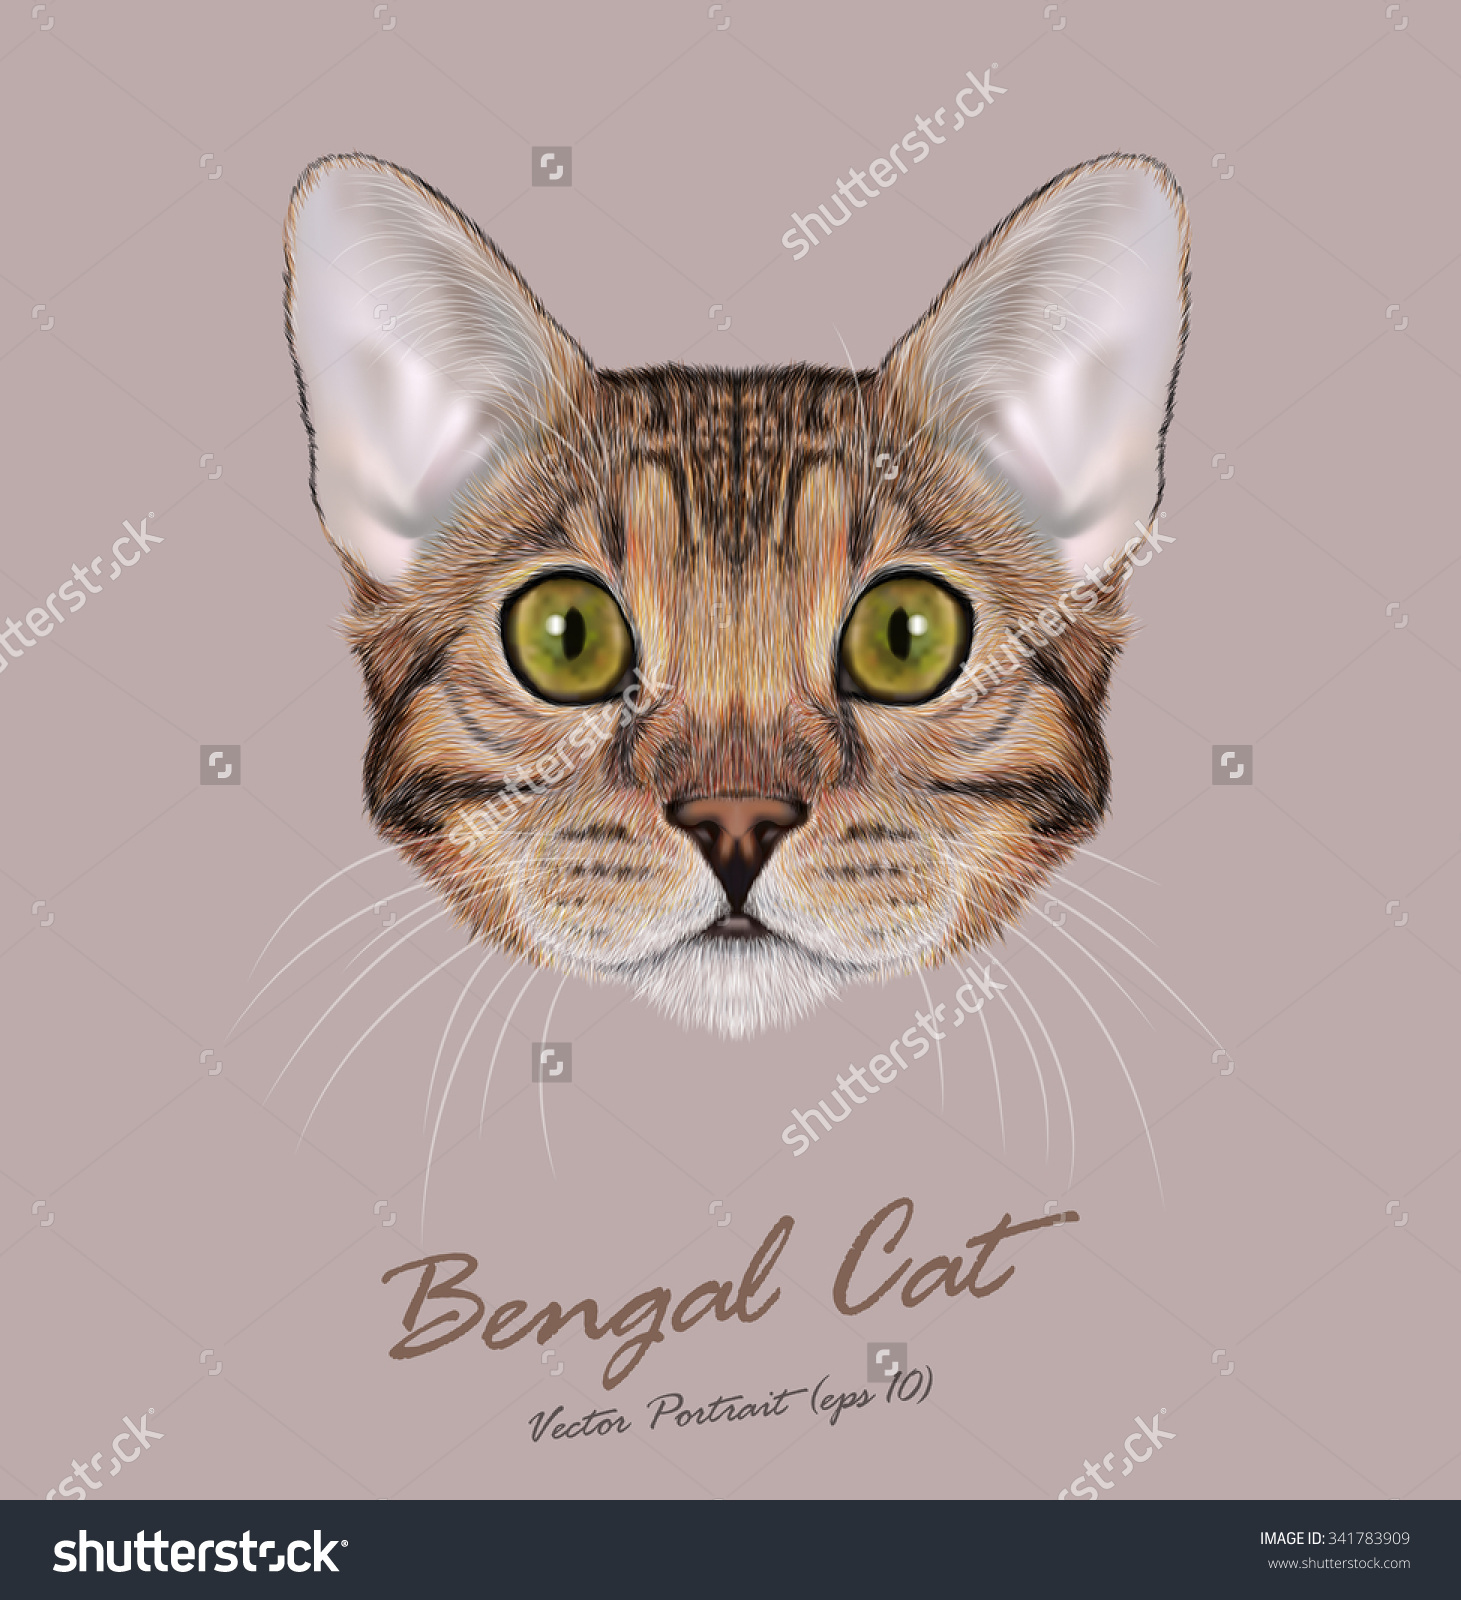 Cat Breeds Stock Vectors & Vector Clip Art.